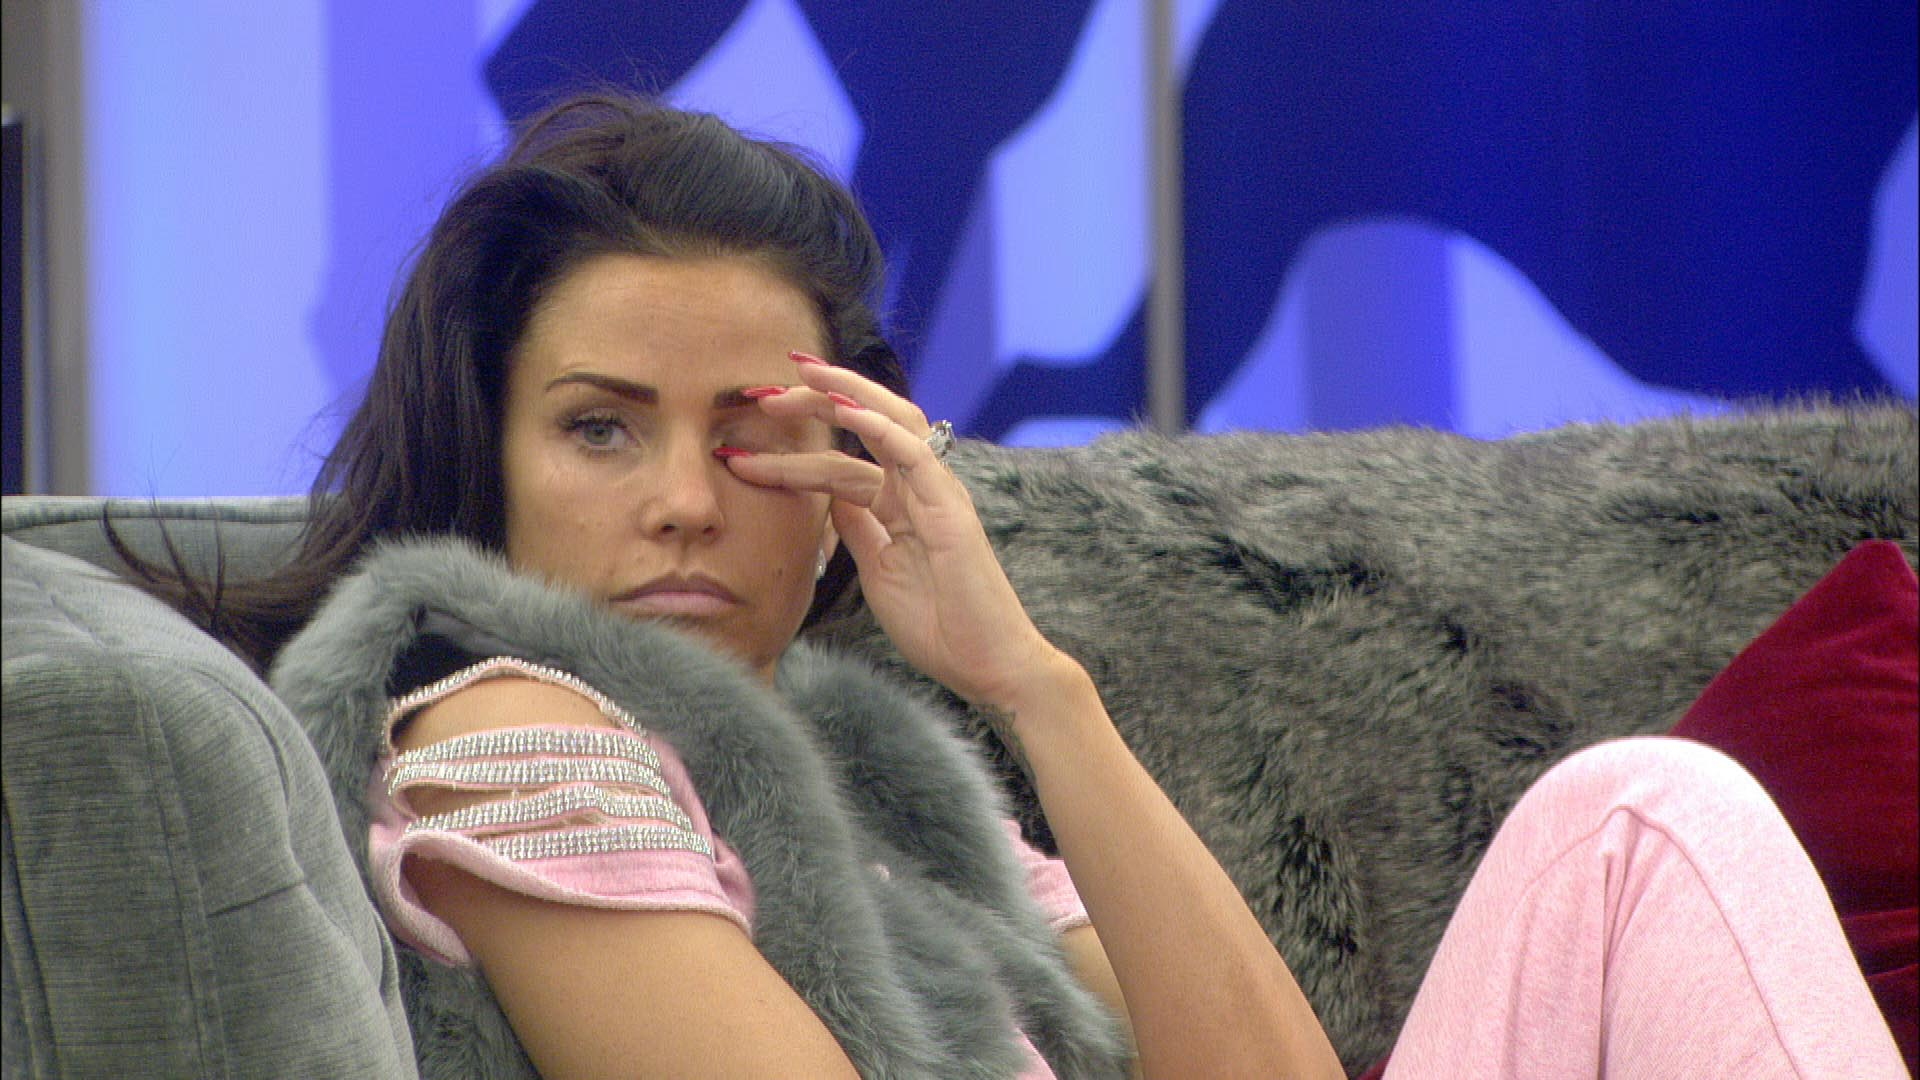 Celebrity Big Brother 2015: Hairdresser 'sneaking into house' every 2 days for Katie Price!